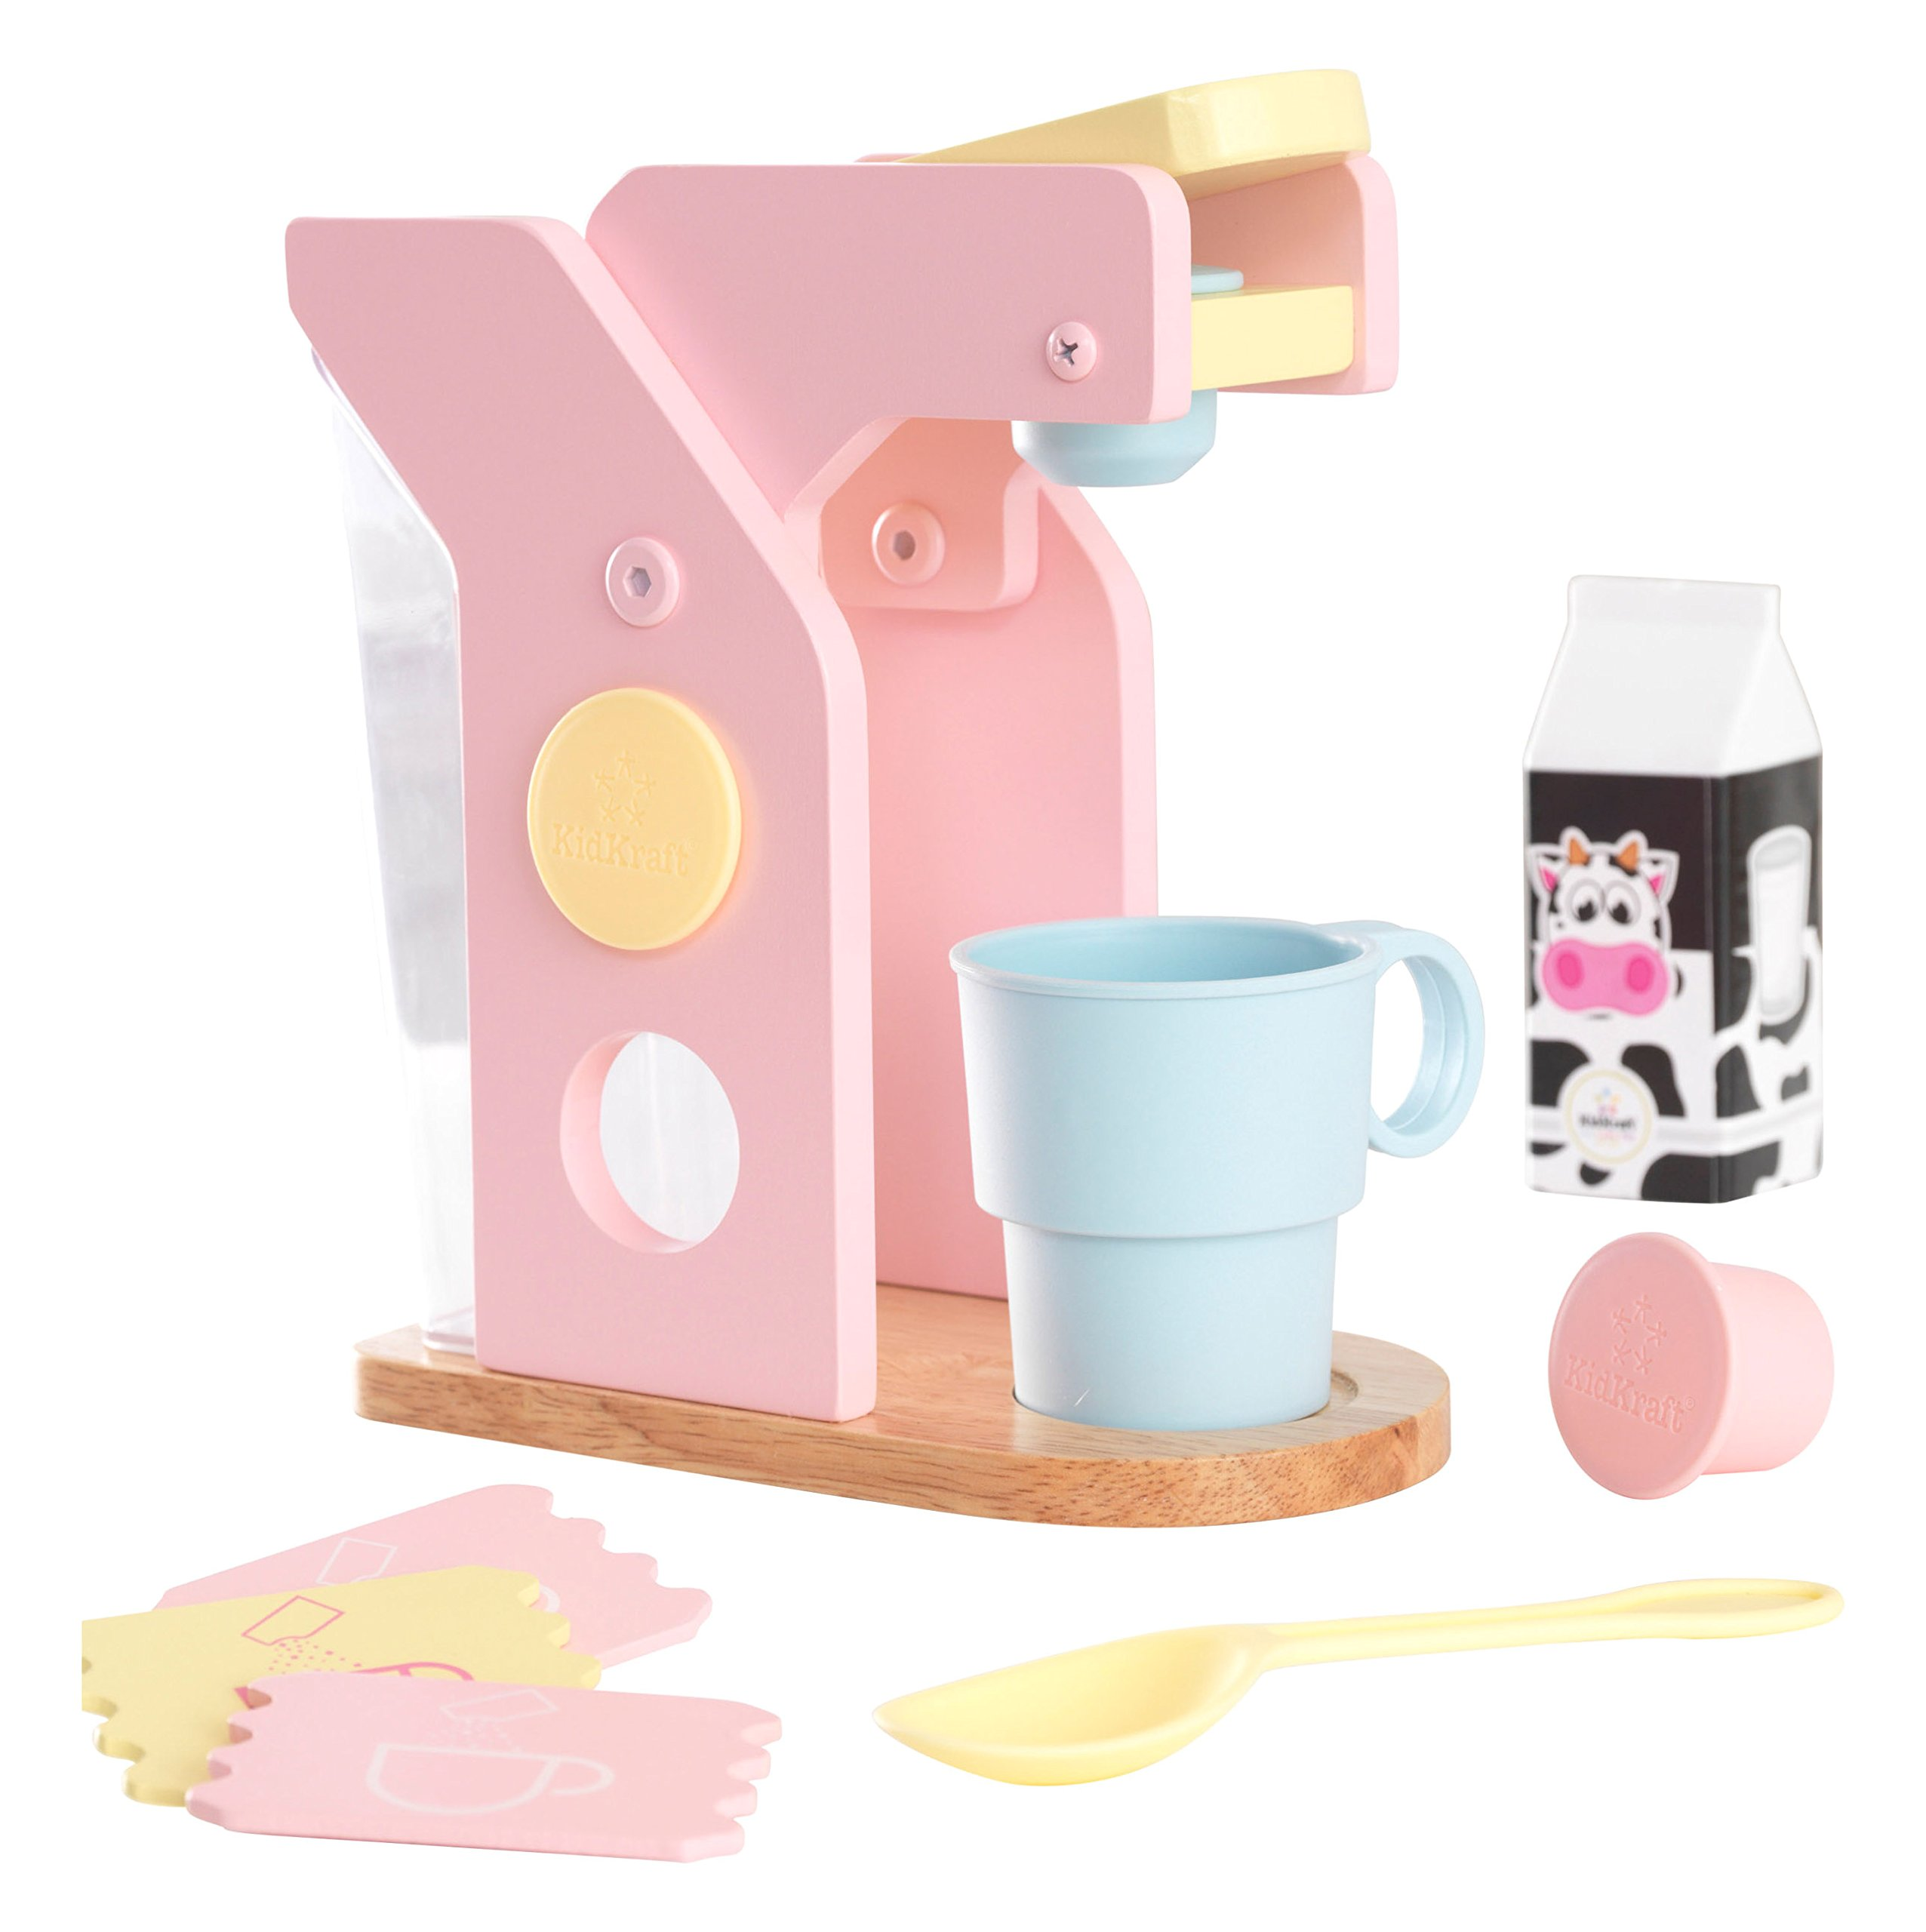 KidKraft Children's Pastel Coffee Set - Role Play Toys for The Kitchen, Play Kitchen Accessories by KidKraft